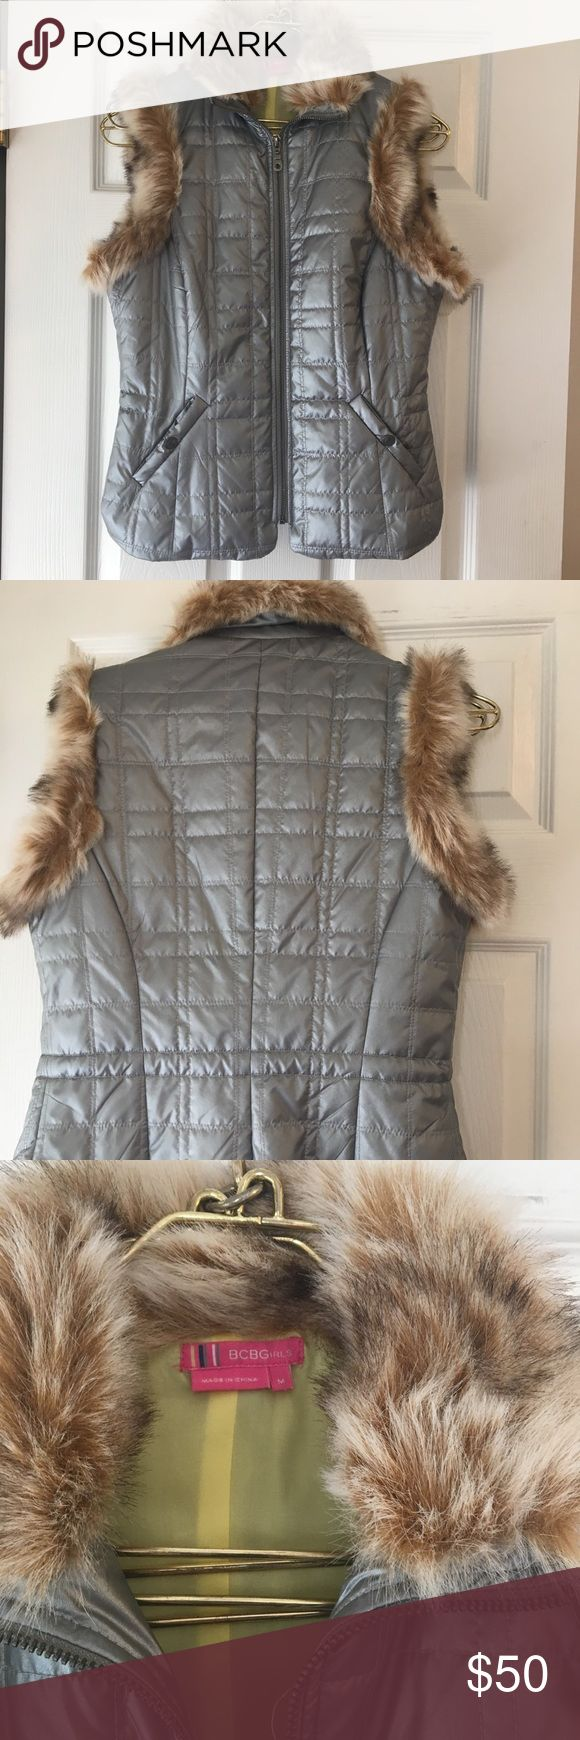 BCBGirls vest- new! Silver vest with faux fur collar and arms. Girls medium, or could fit a lady's small. So cute!! Fast Shipping. BCBGirls Shirts & Tops